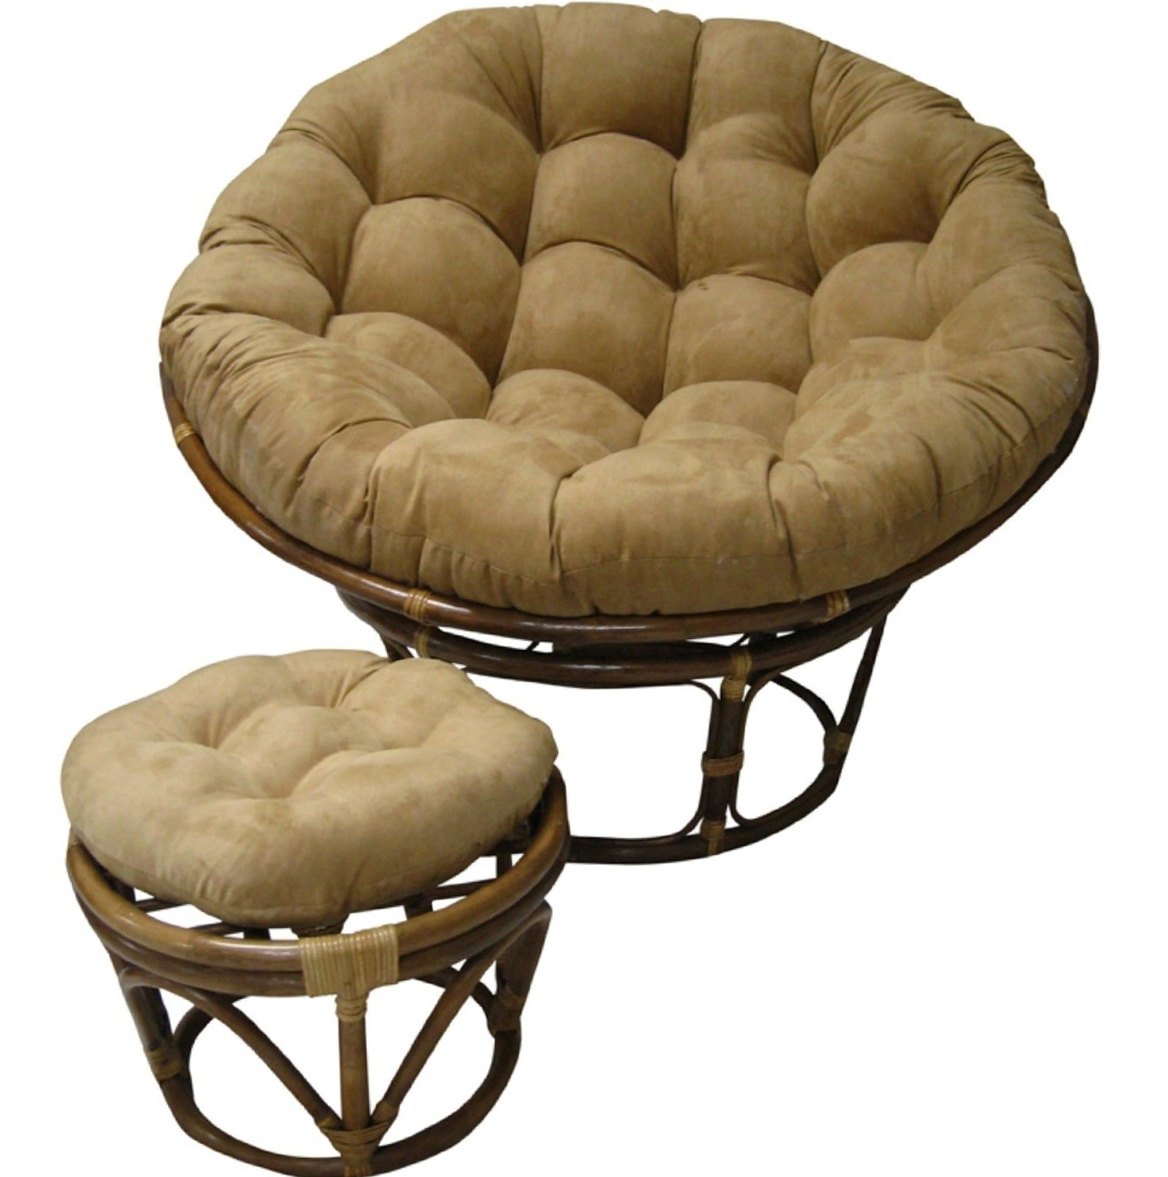 Outdoor Papasan Chair Outdoor Papasan Cushion Sale Home Design Ideas